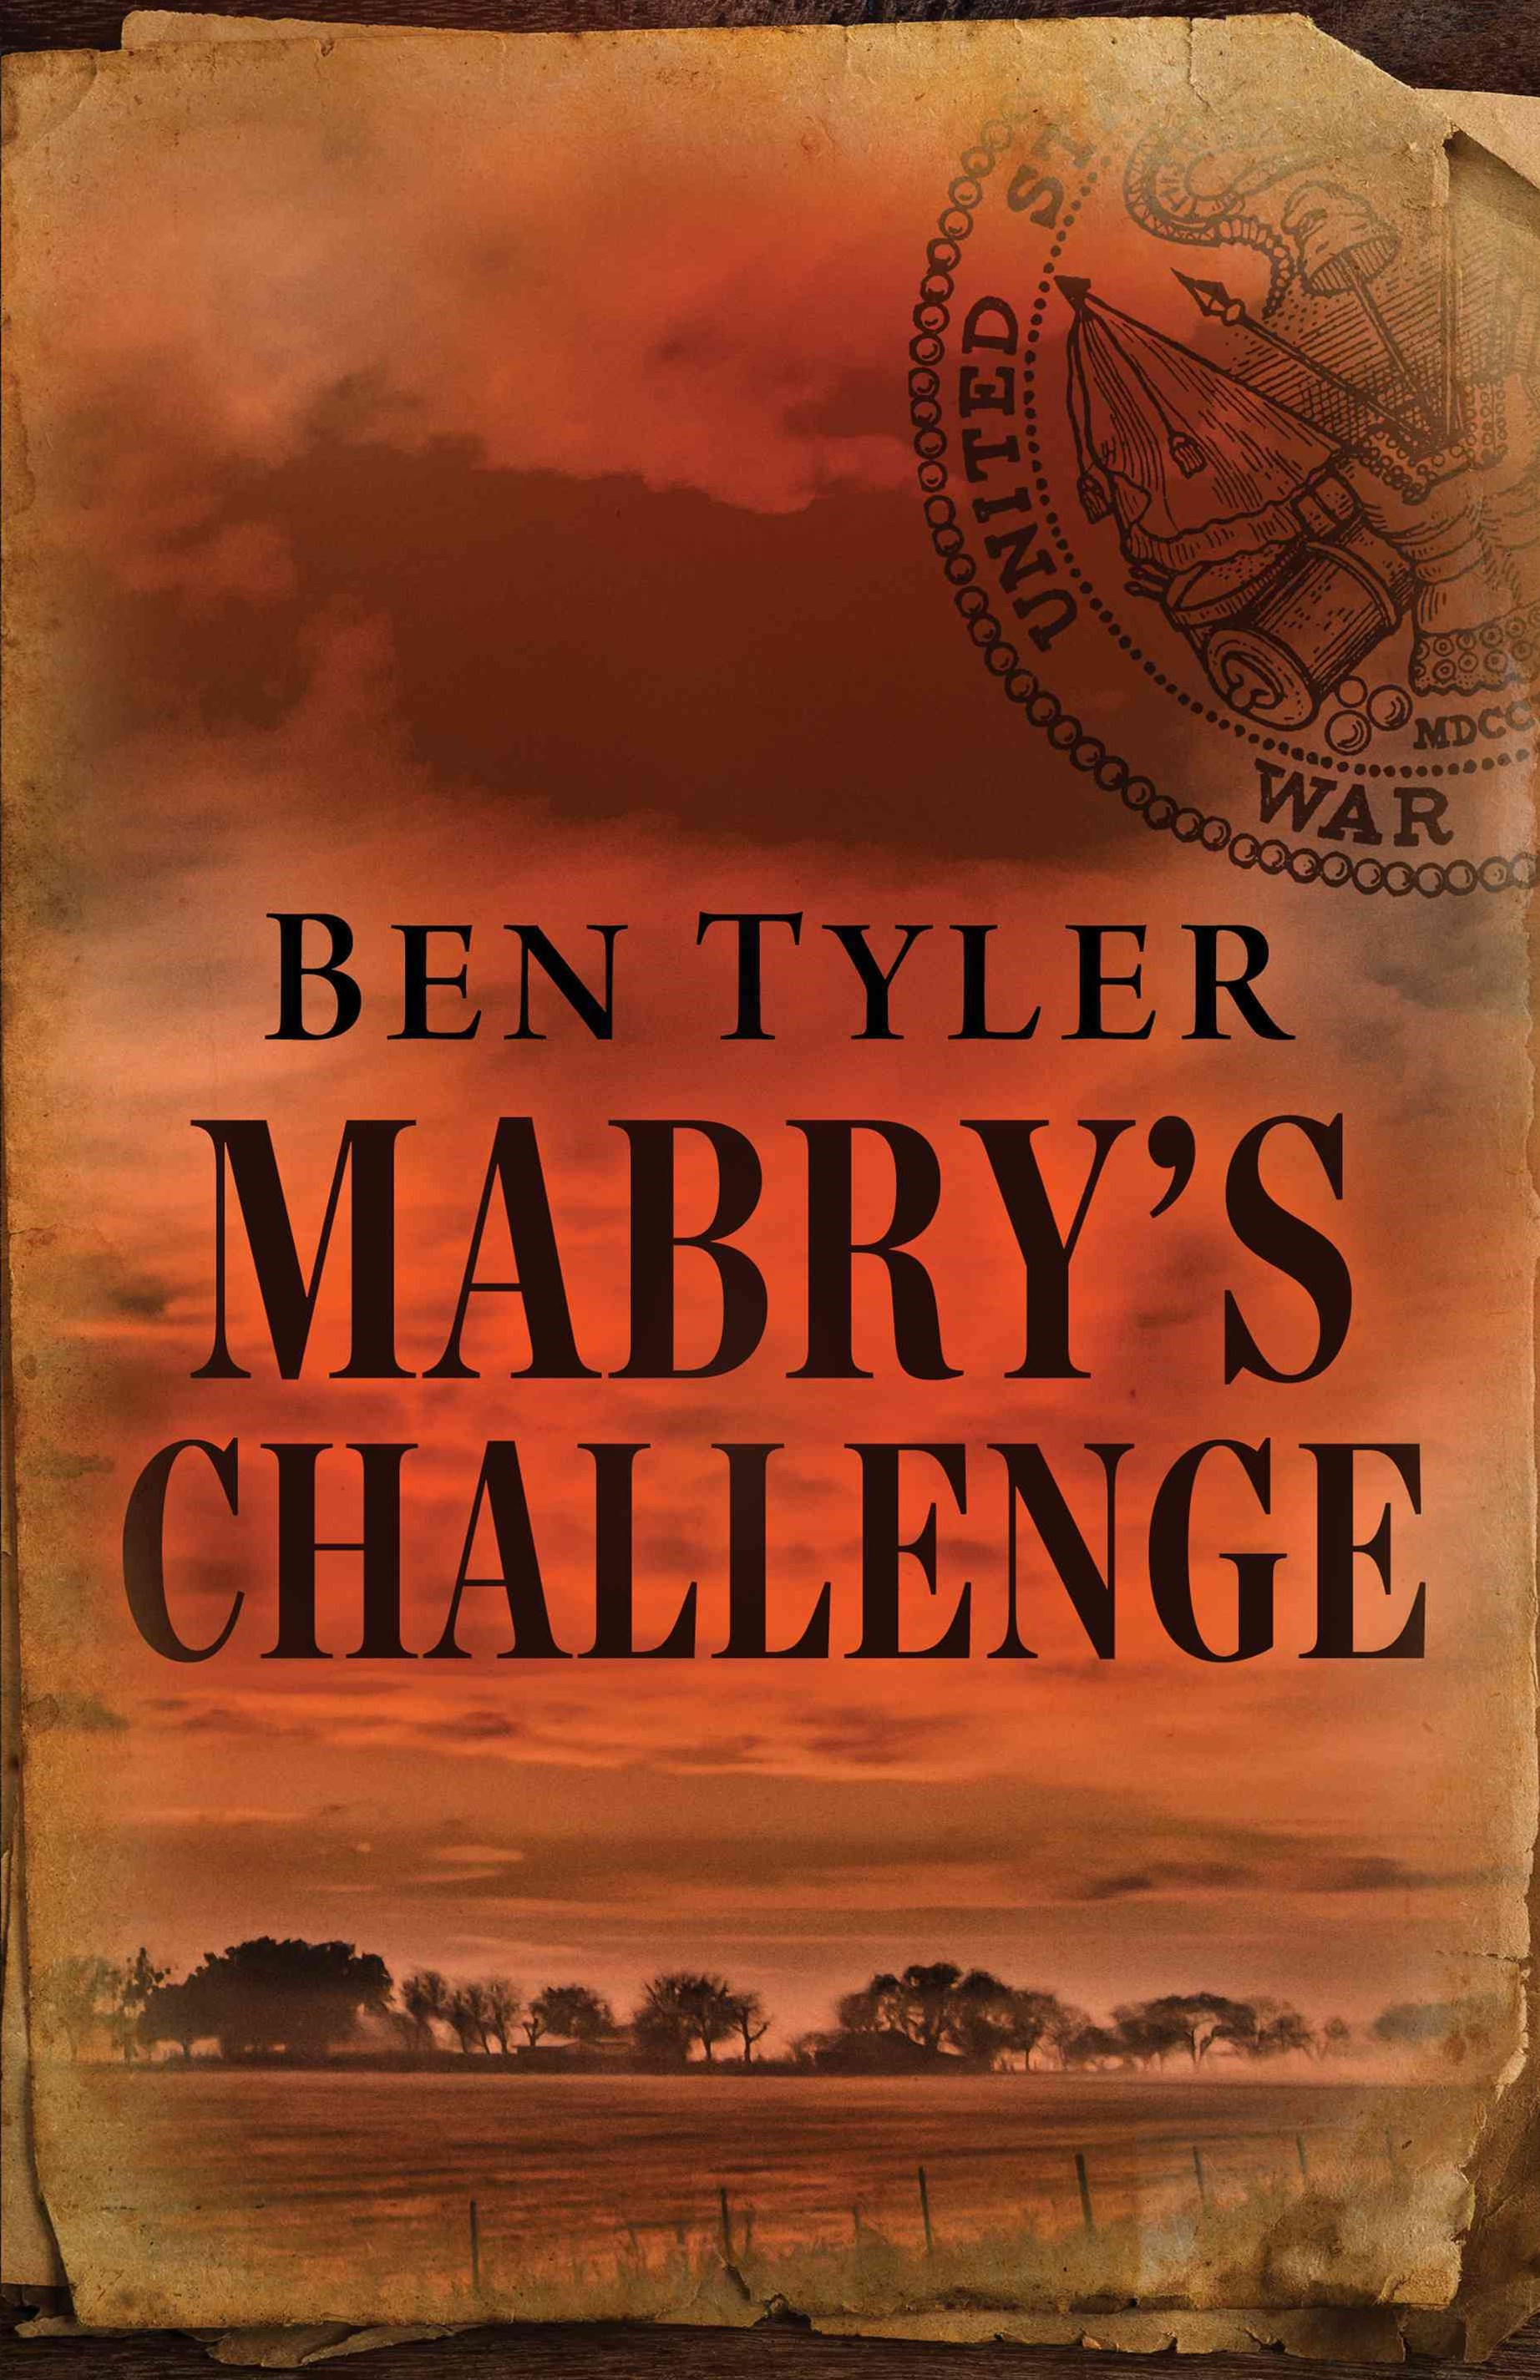 Mabry's Challenge